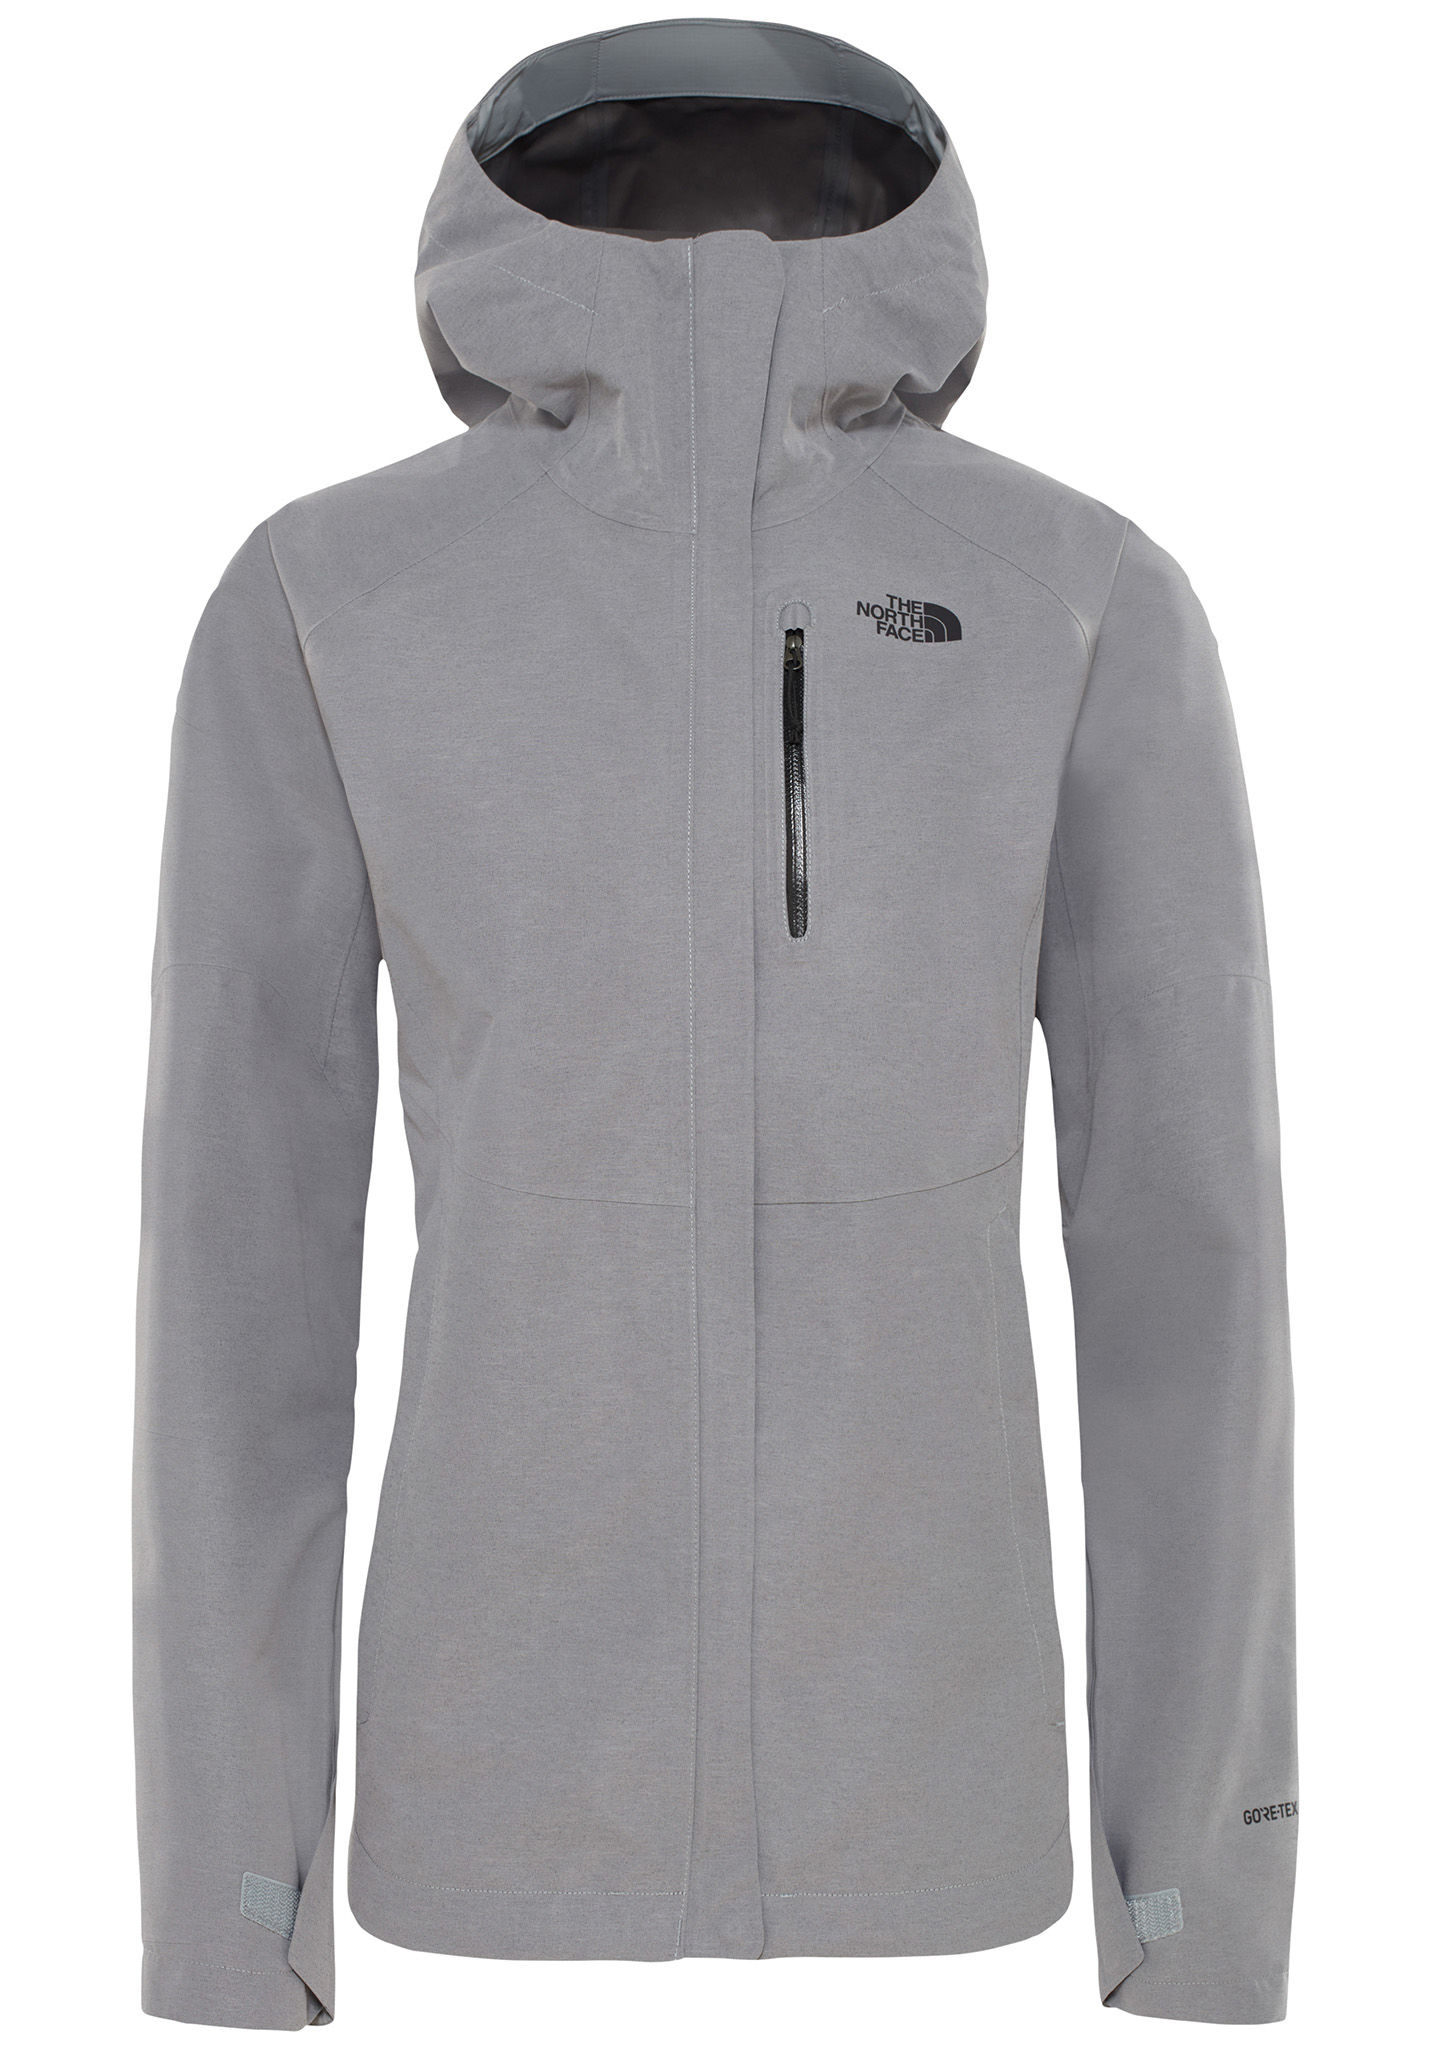 19e94d606 THE NORTH FACE Dryzzle - Jacket for Women - Grey